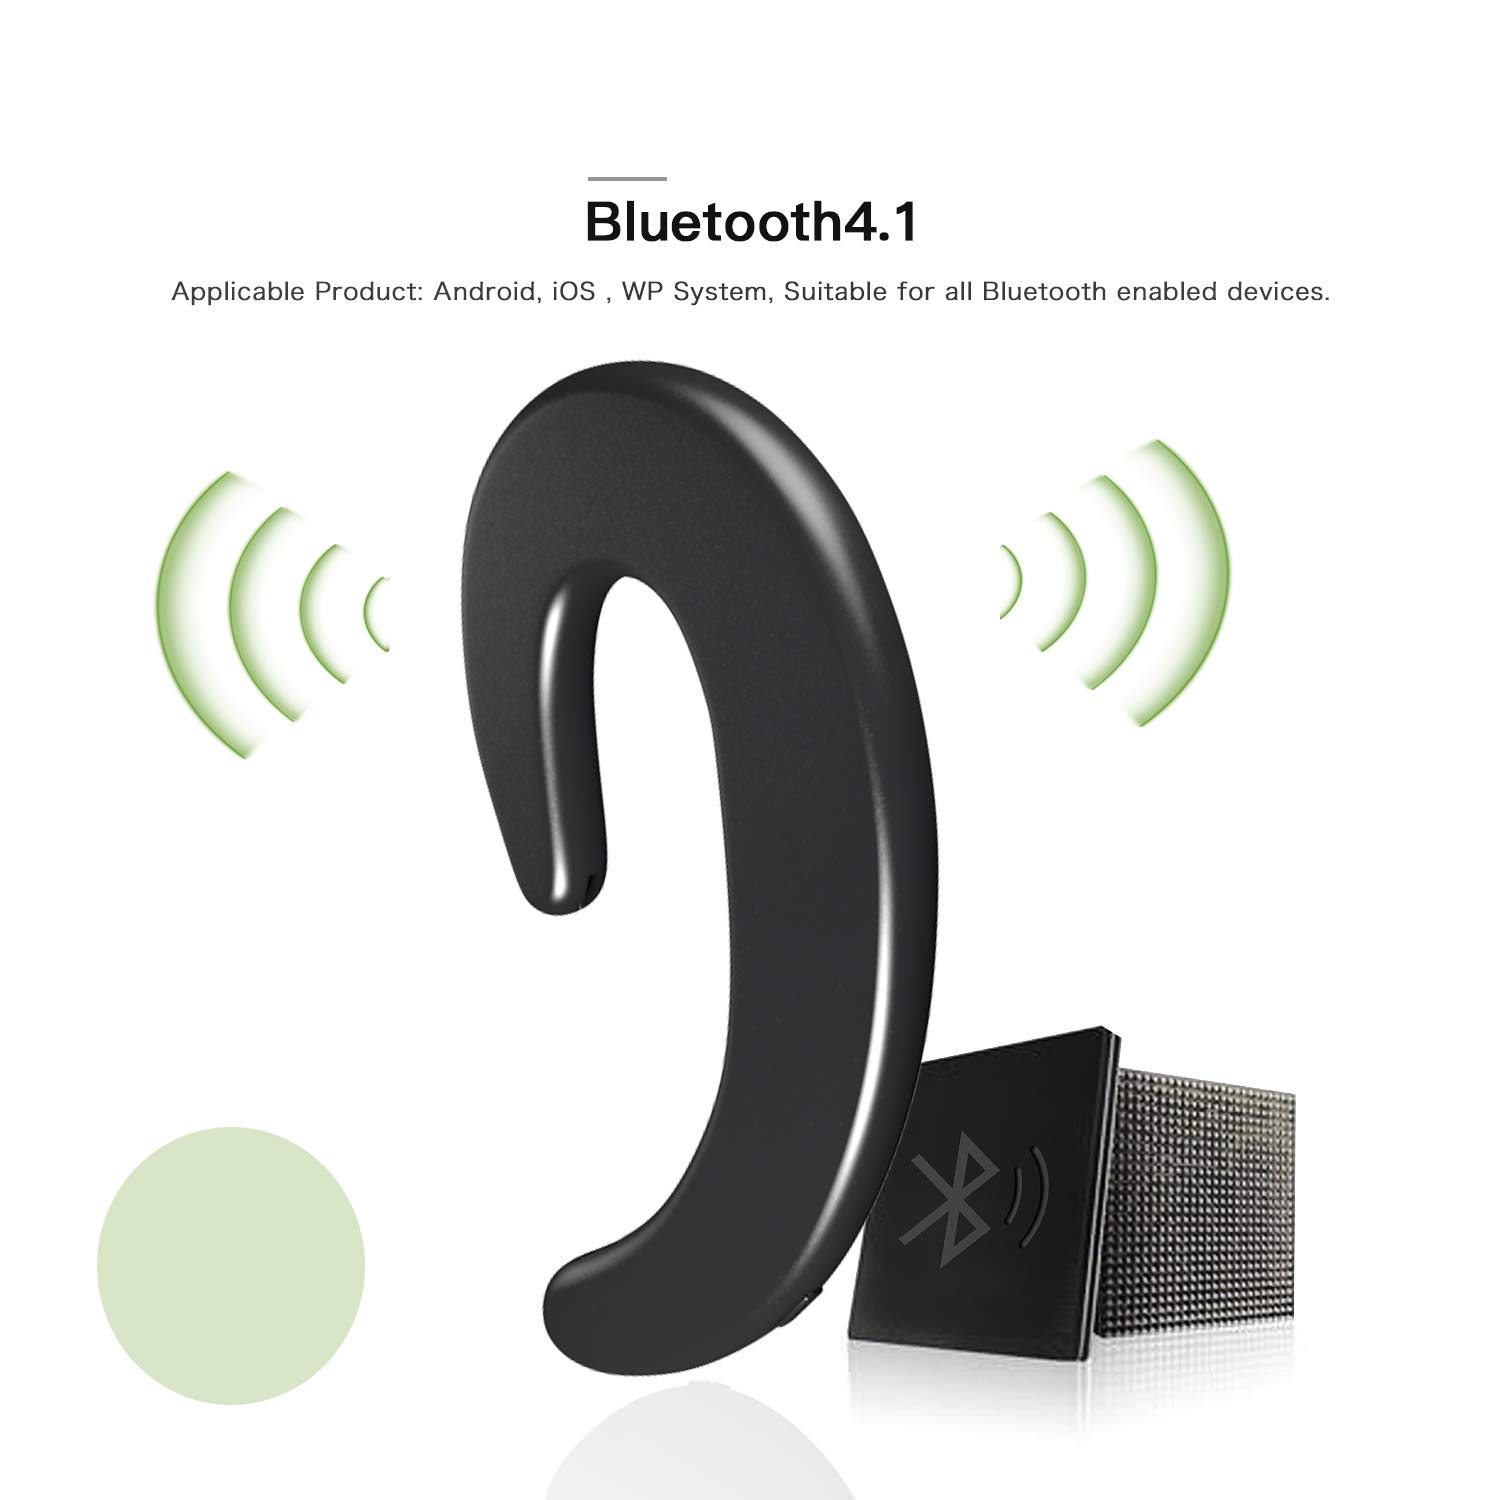 Wireless Bluetooth Earbud Sport Earphone Invisible Single Ear-Hook Bluetooth Headset Earpiece with Mic Noise Cancelling 6-Hour Play Time Business Headphone for Smartphone by AUDIIOO (Image #3)